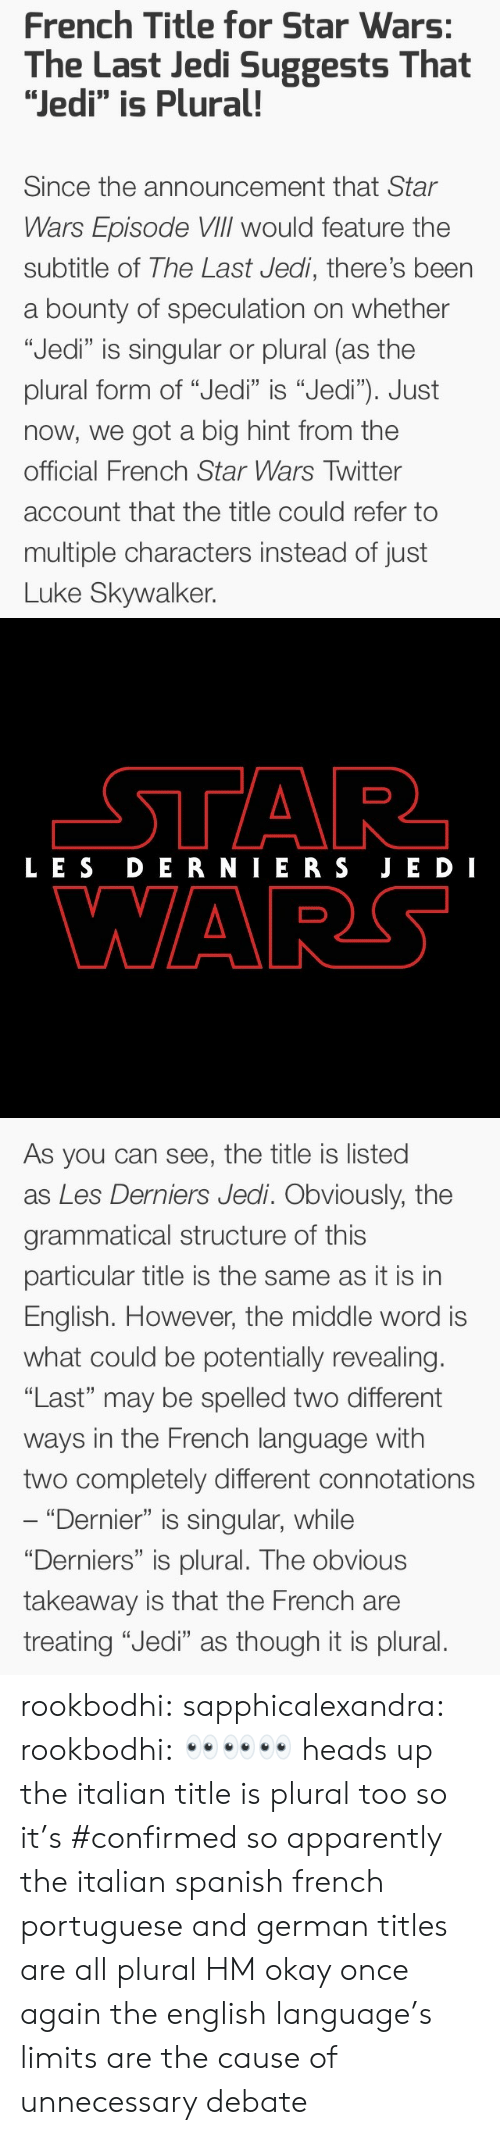 "Apparently, Jedi, and Luke Skywalker: French Title for Star Wars:  The Last Jedi Suggests That  ""Jedi"" is Plural!  Since the announcement that Star  Wars Episode VIlIl would feature the  subtitle of The Last Jedi, there's been  a bounty of speculation on whether  ""Jedi"" is singular or plural (as the  plural form of ""Jedi"" is ""Jedi""). Just  now, we got a big hint from the  official French Star Wars Twitter  account that the title could refer to  multiple characters instead of just  Luke Skywalker.   LES DERNIERS JE DI  WARS   As you can see, the title is listed  as Les Derniers Jedi. Obviously, the  grammatical structure of this  particular title is the same as it is in  English. However, the middle word is  what could be potentially revealing.  ""Last"" may be spelled two different  ways in the French language with  two completely different connotations  ""Dernier"" is singular, while  ""Derniers"" is plural. The obvious  takeaway is that the French are  treating ""Jedi"" as though it is plural. rookbodhi:  sapphicalexandra:  rookbodhi: 👀👀👀 heads up the italian title is plural too so it's #confirmed  so apparently the italian spanish french portuguese and german titles are all plural HM okay once again the english language's limits are the cause of unnecessary debate"